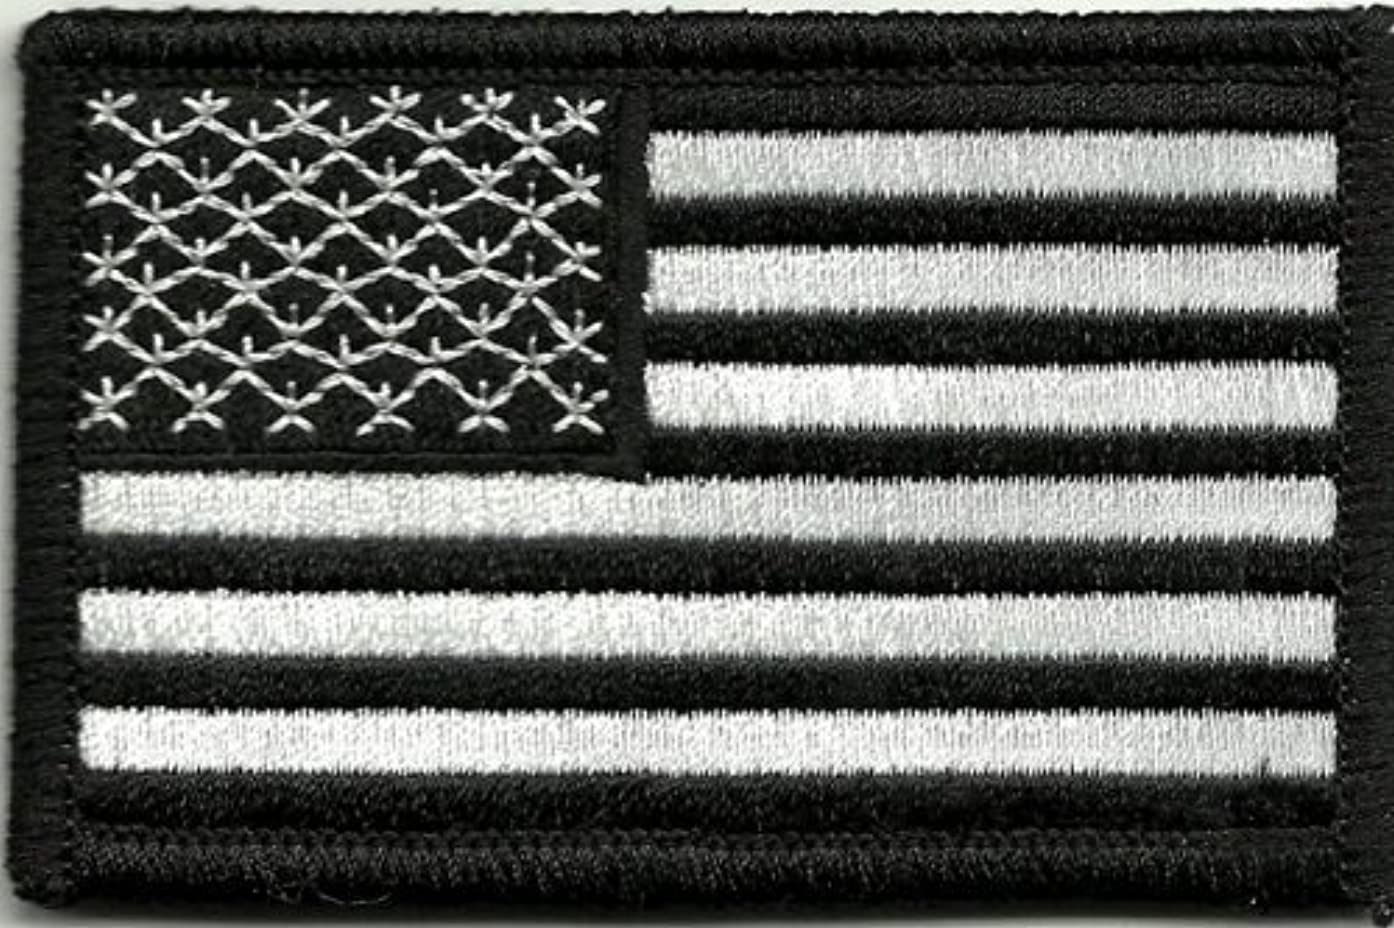 American Flag USA Flag Patch - Multitan - Embroidered Patch (Black - Silver)